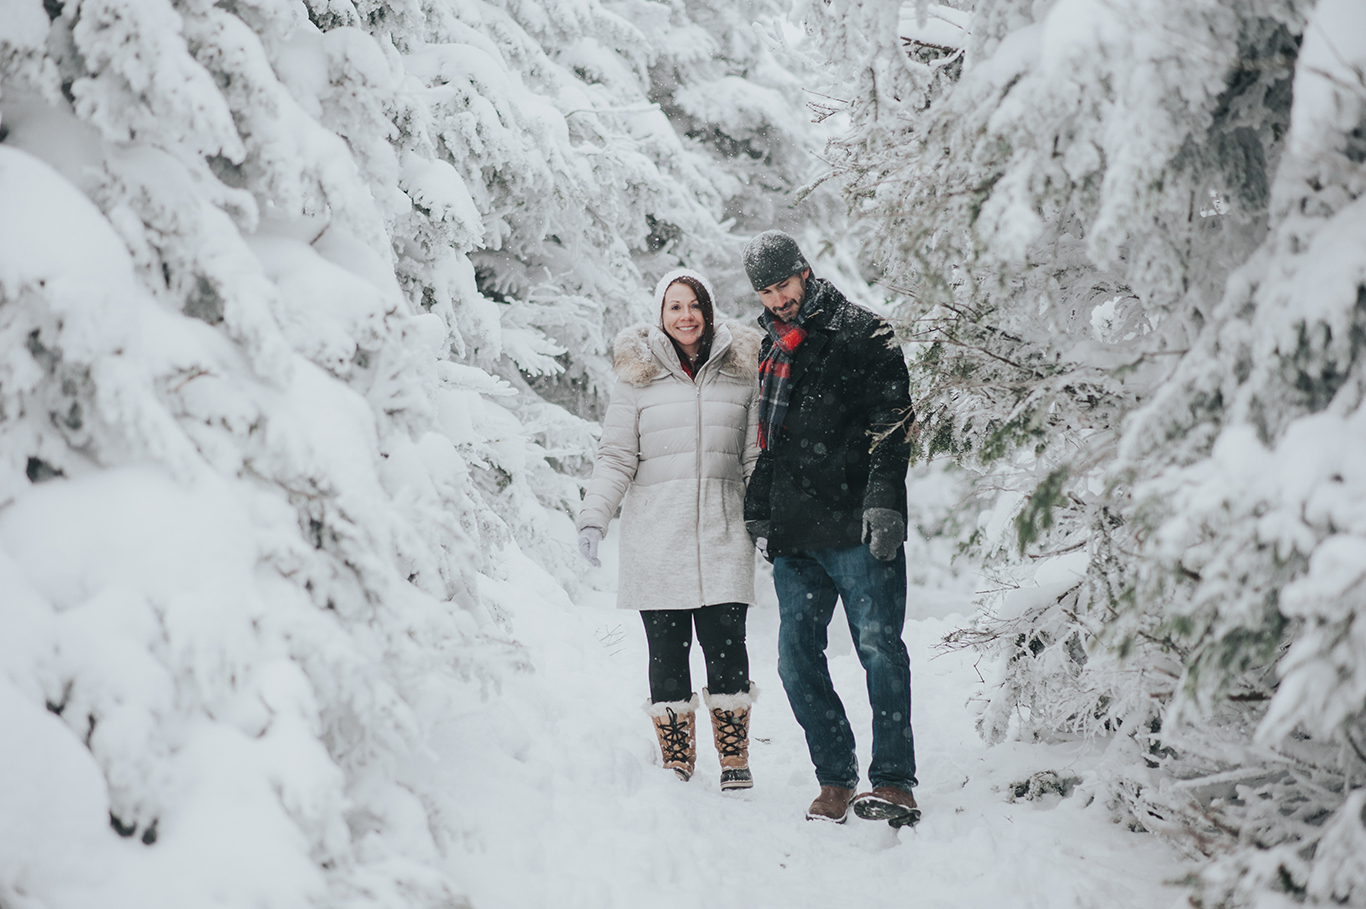 couple-vermont-winter-engagement-session-killington-peak-idena-photographer2.jpg